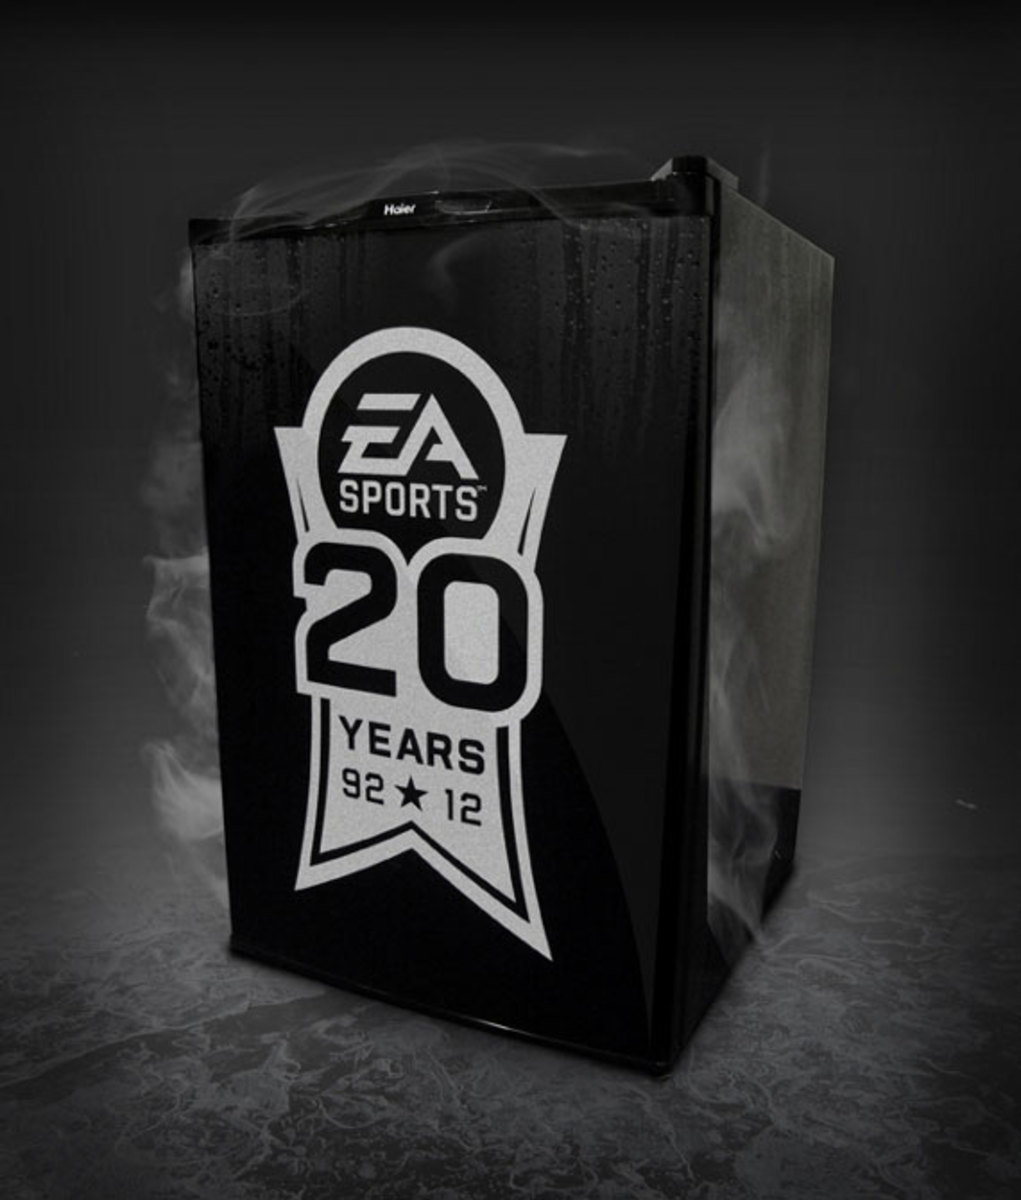 ea-sports-premium-package-18